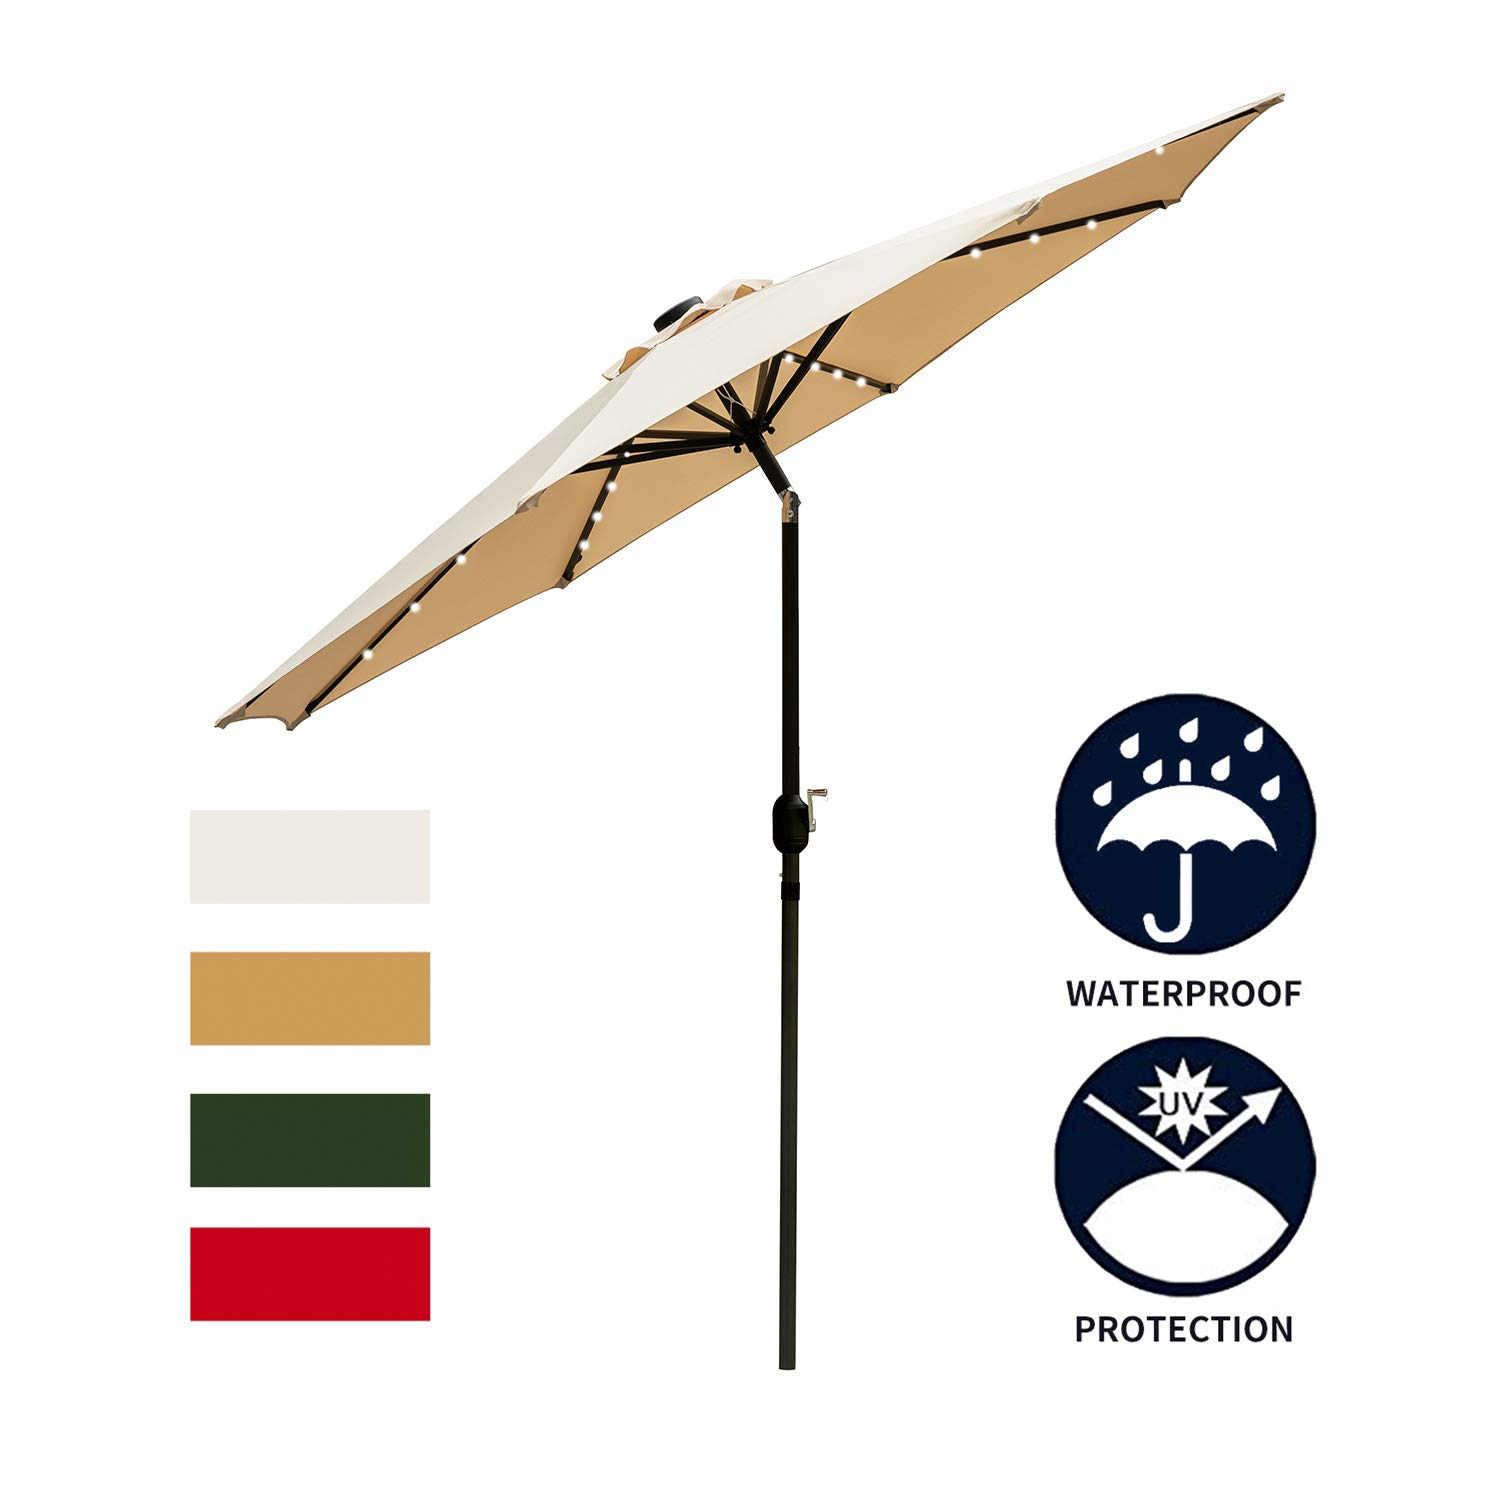 Ainfox 9ft Solar Patio Umbrella with LED Light, Steel Umbrella Ribs Waterproof Prevent Bask in for Garden, Indoor, Outdoor Use Without Base (Beige) by Ainfox